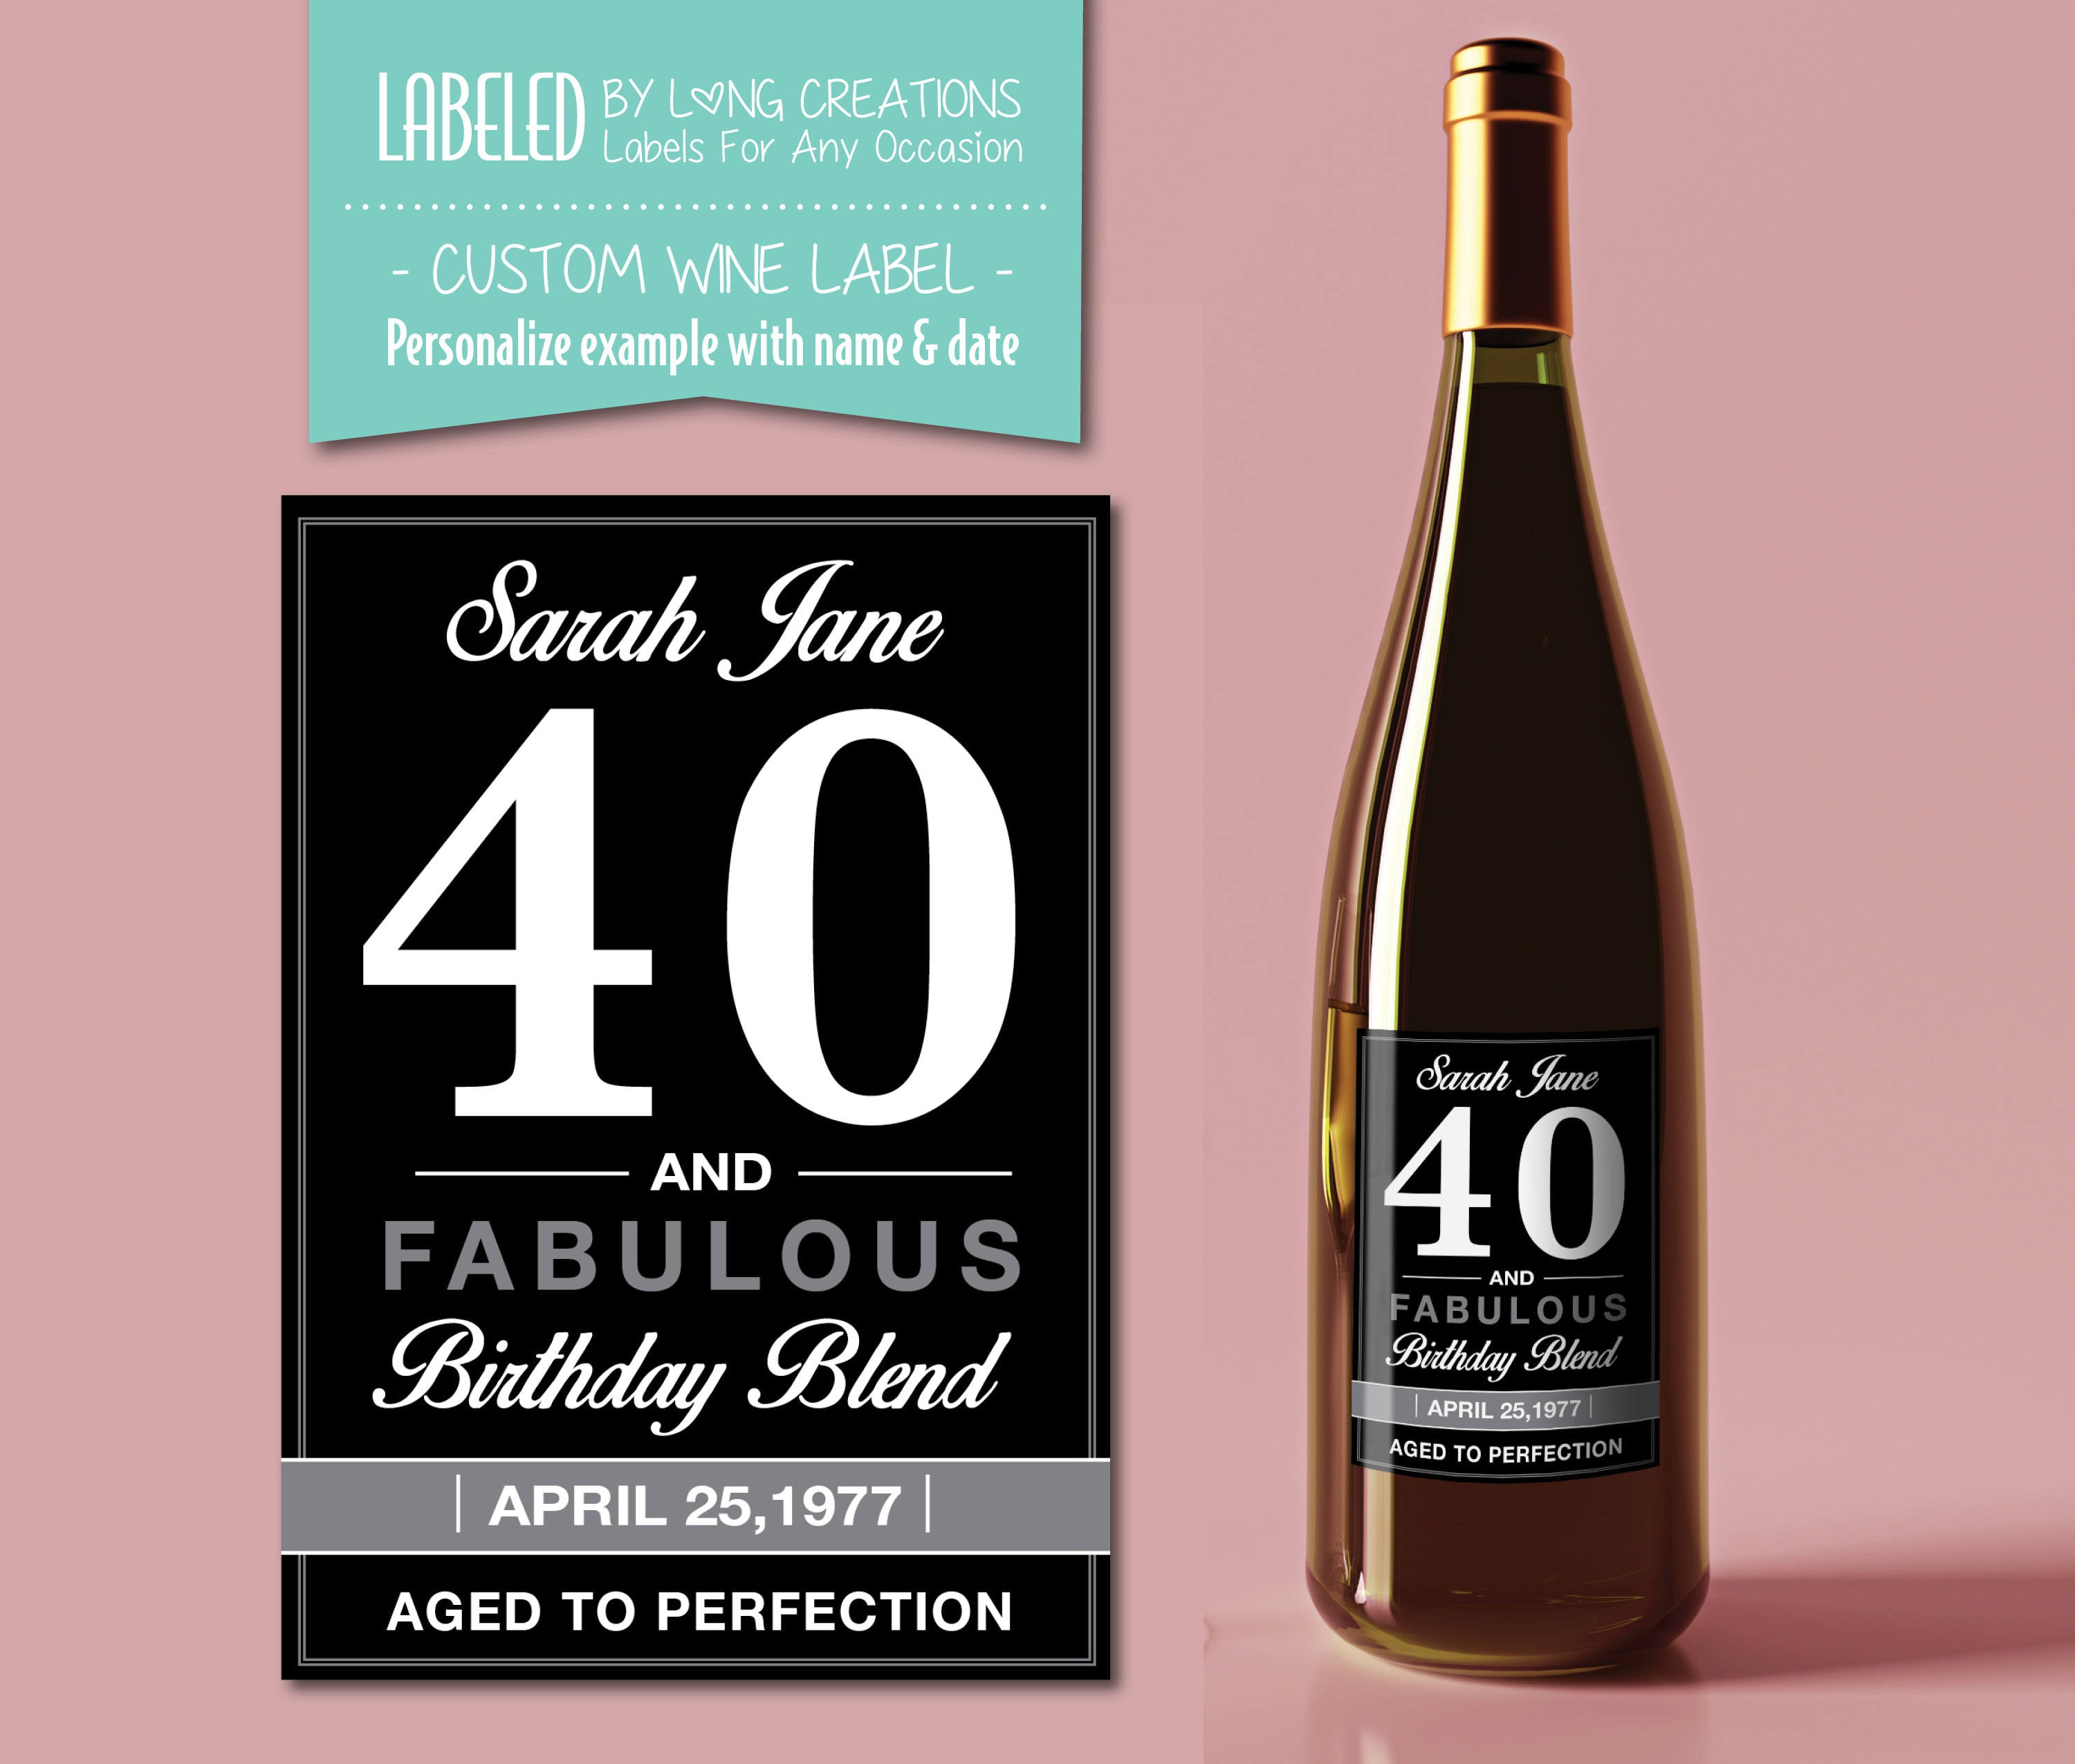 40 birthday wine label 40 and fabulous wine sticker | Etsy